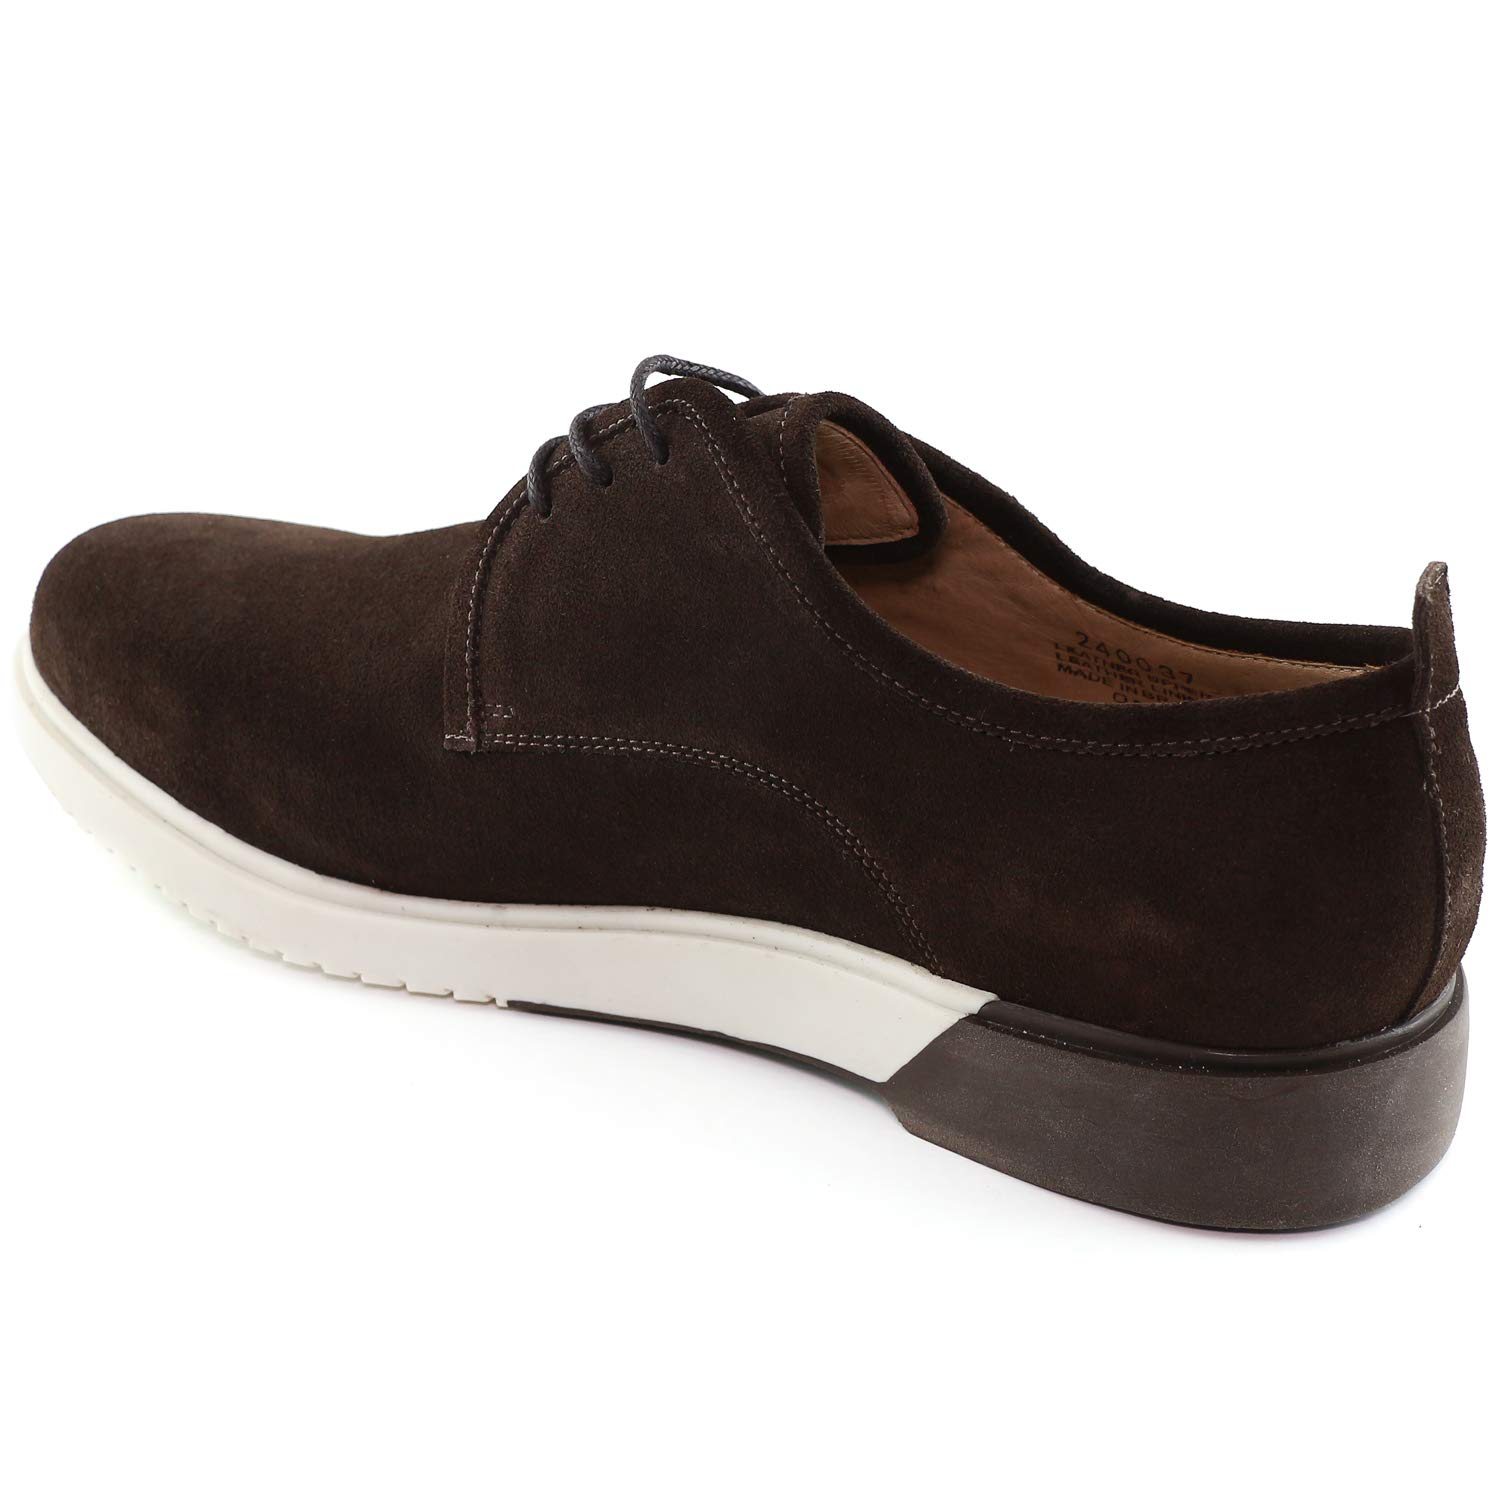 Mens Genuine Leather Made in Brazil Tribeca Lace Up